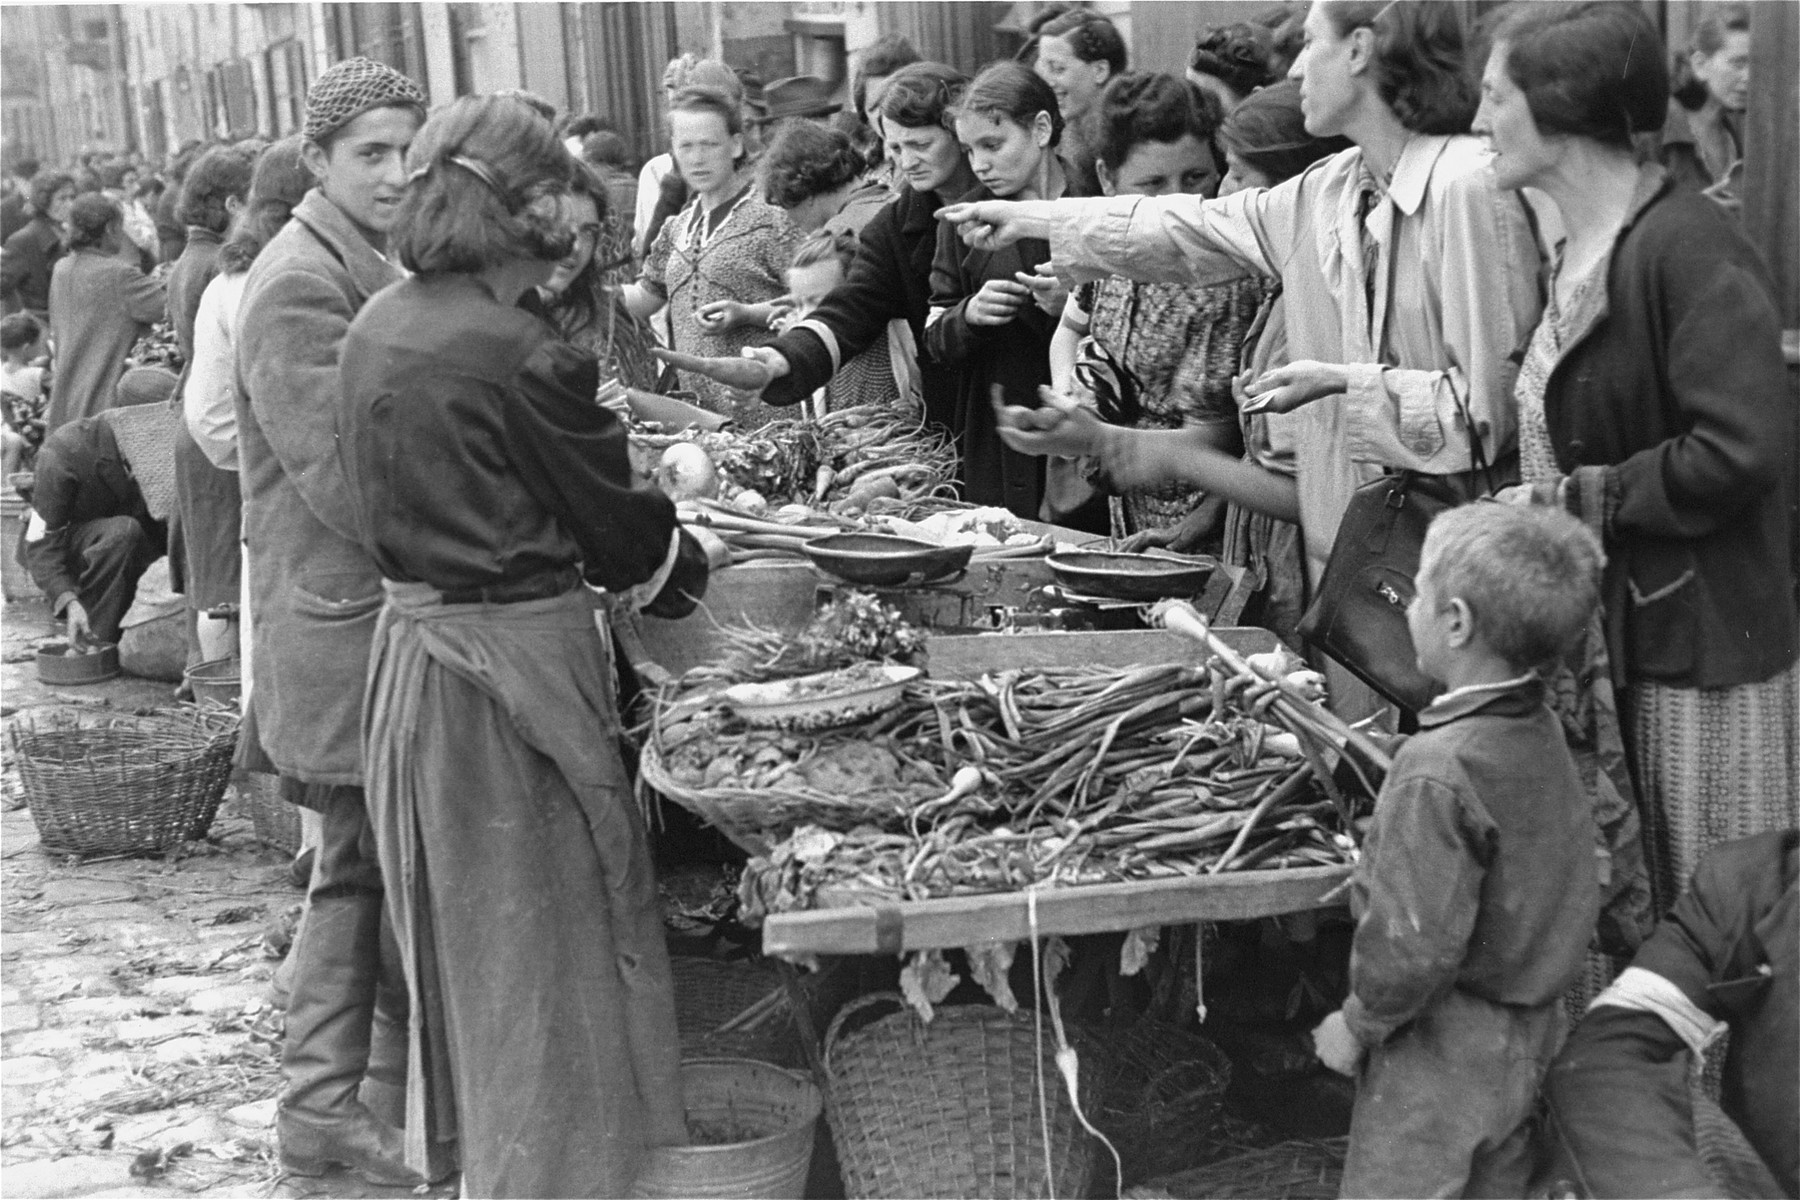 Jewish vendors sell vegetables at an open air market in the Warsaw ghetto.